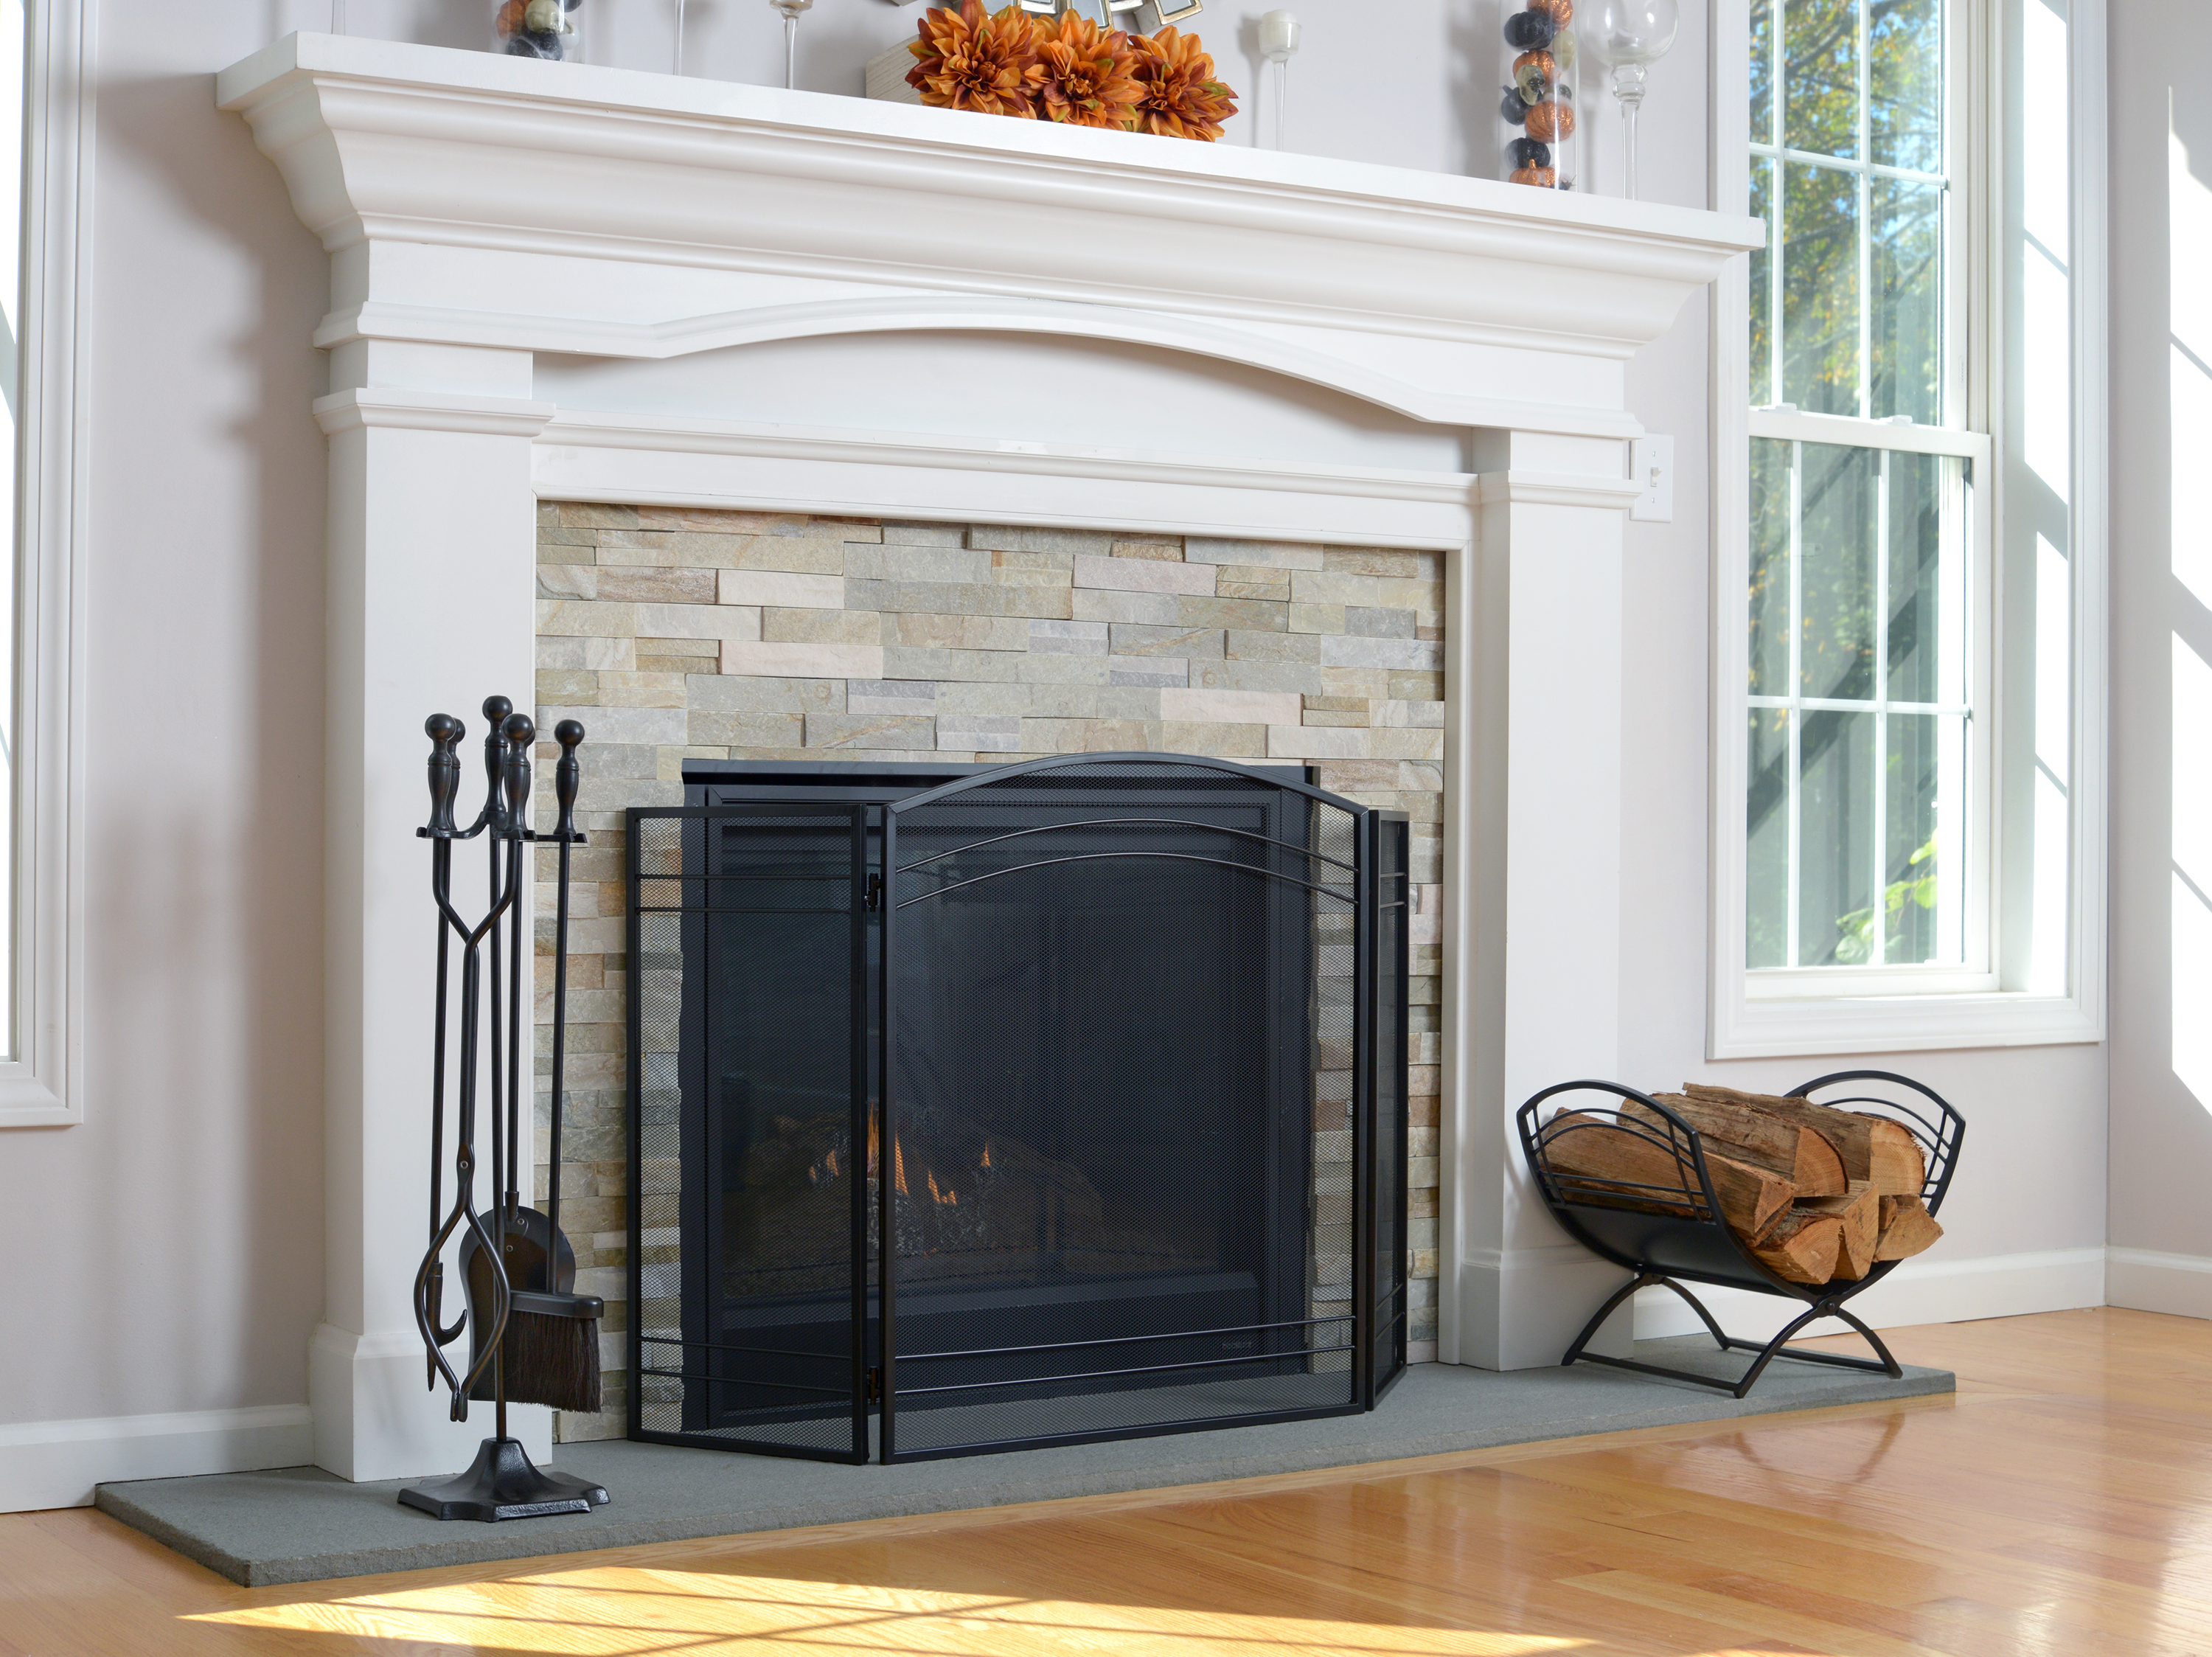 It S Time To Give Your Fireplace A Makeover Get Your Hearth Decor Ready For The Holiday Season Need Idea With Images Fireplace Hearth Fireplace Hearth Decor Hearth Decor